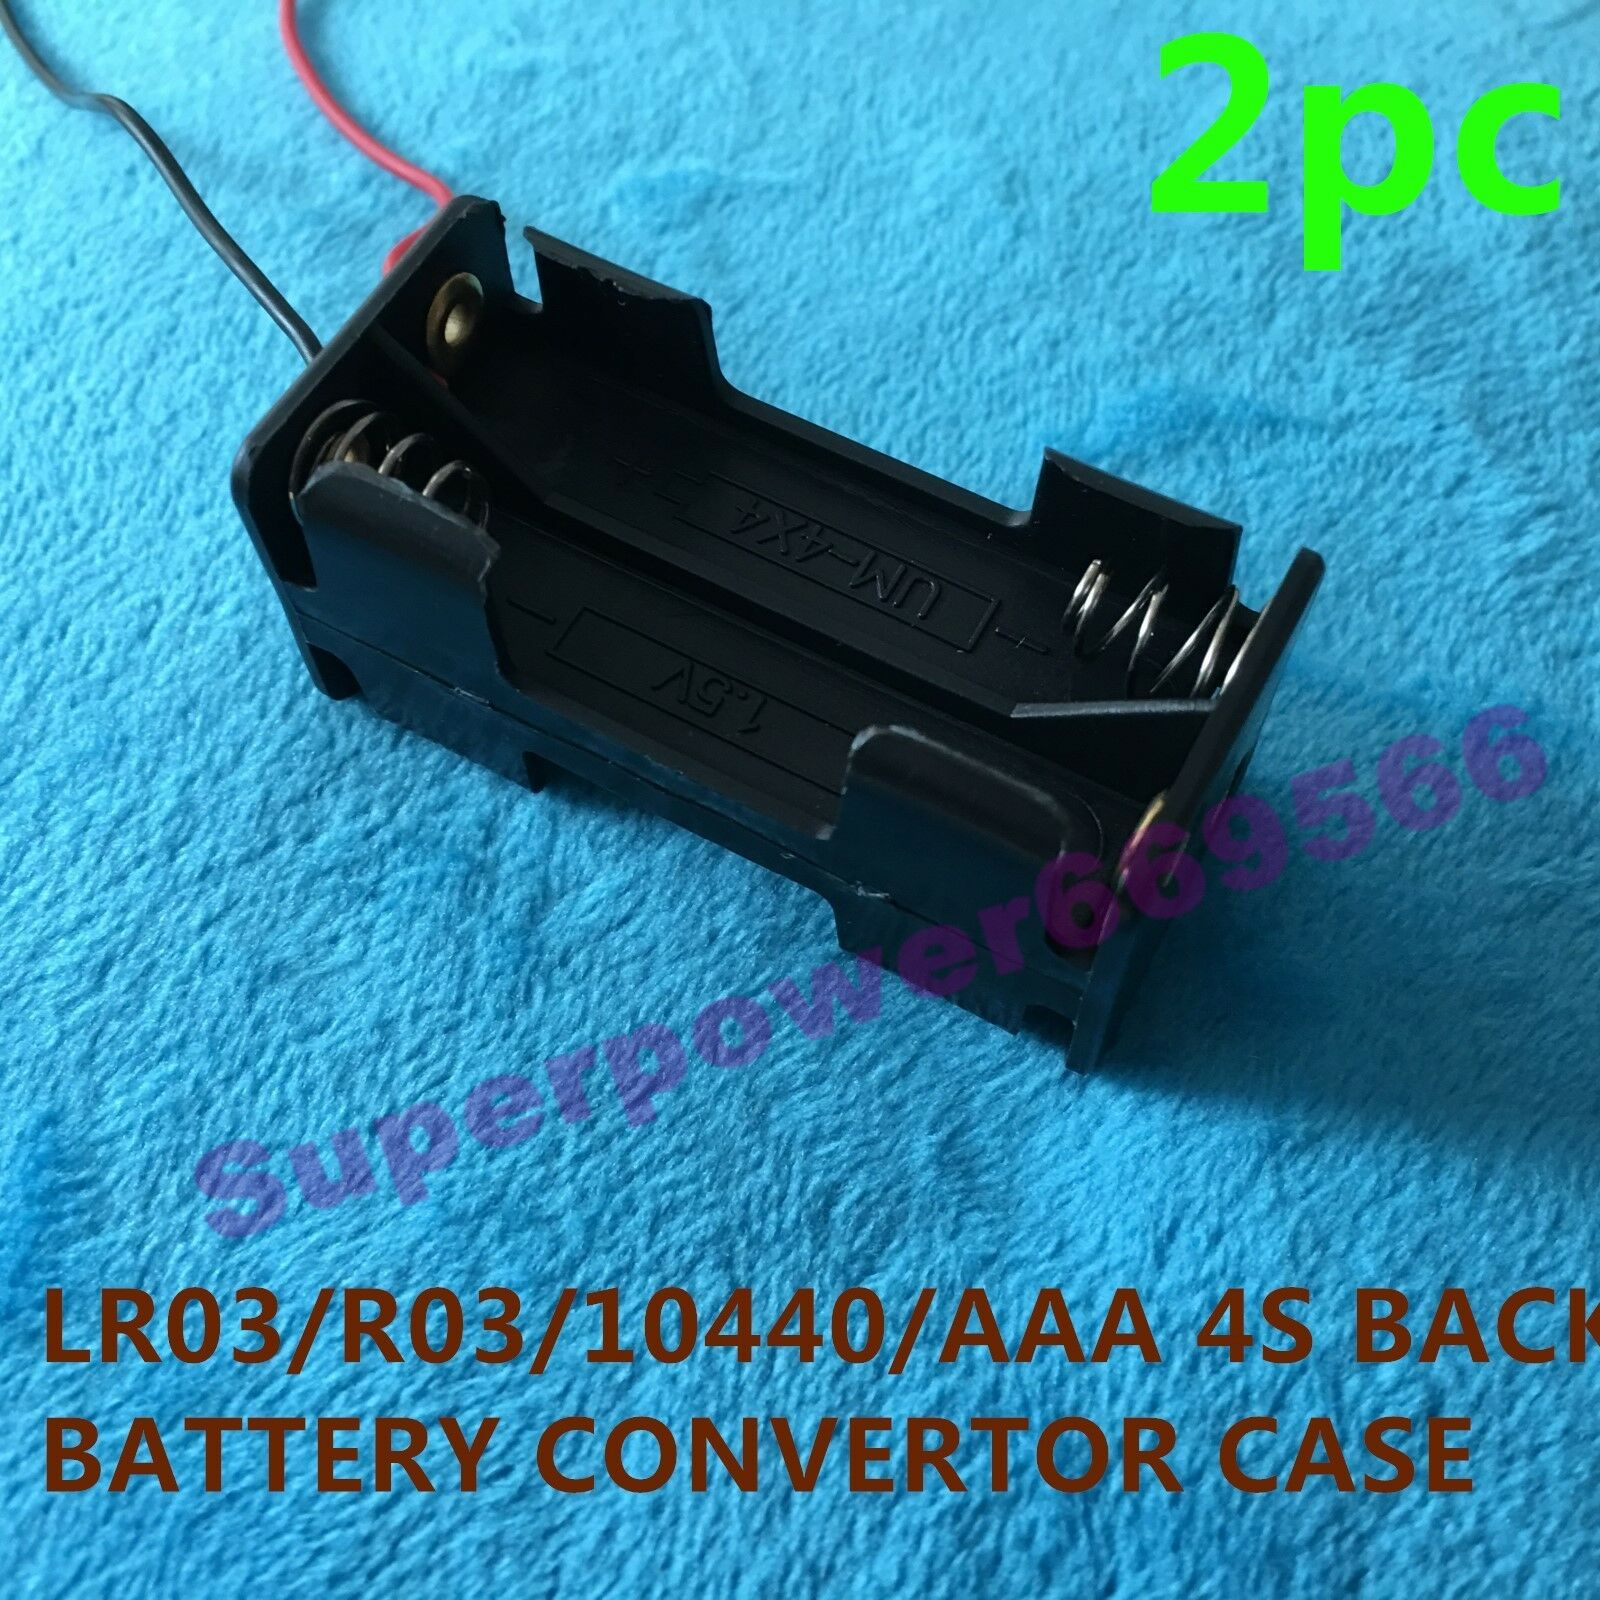 2PC FOUR slot clip plastic connector BACK TO BACK holder for LR03 R03 AAA 10440